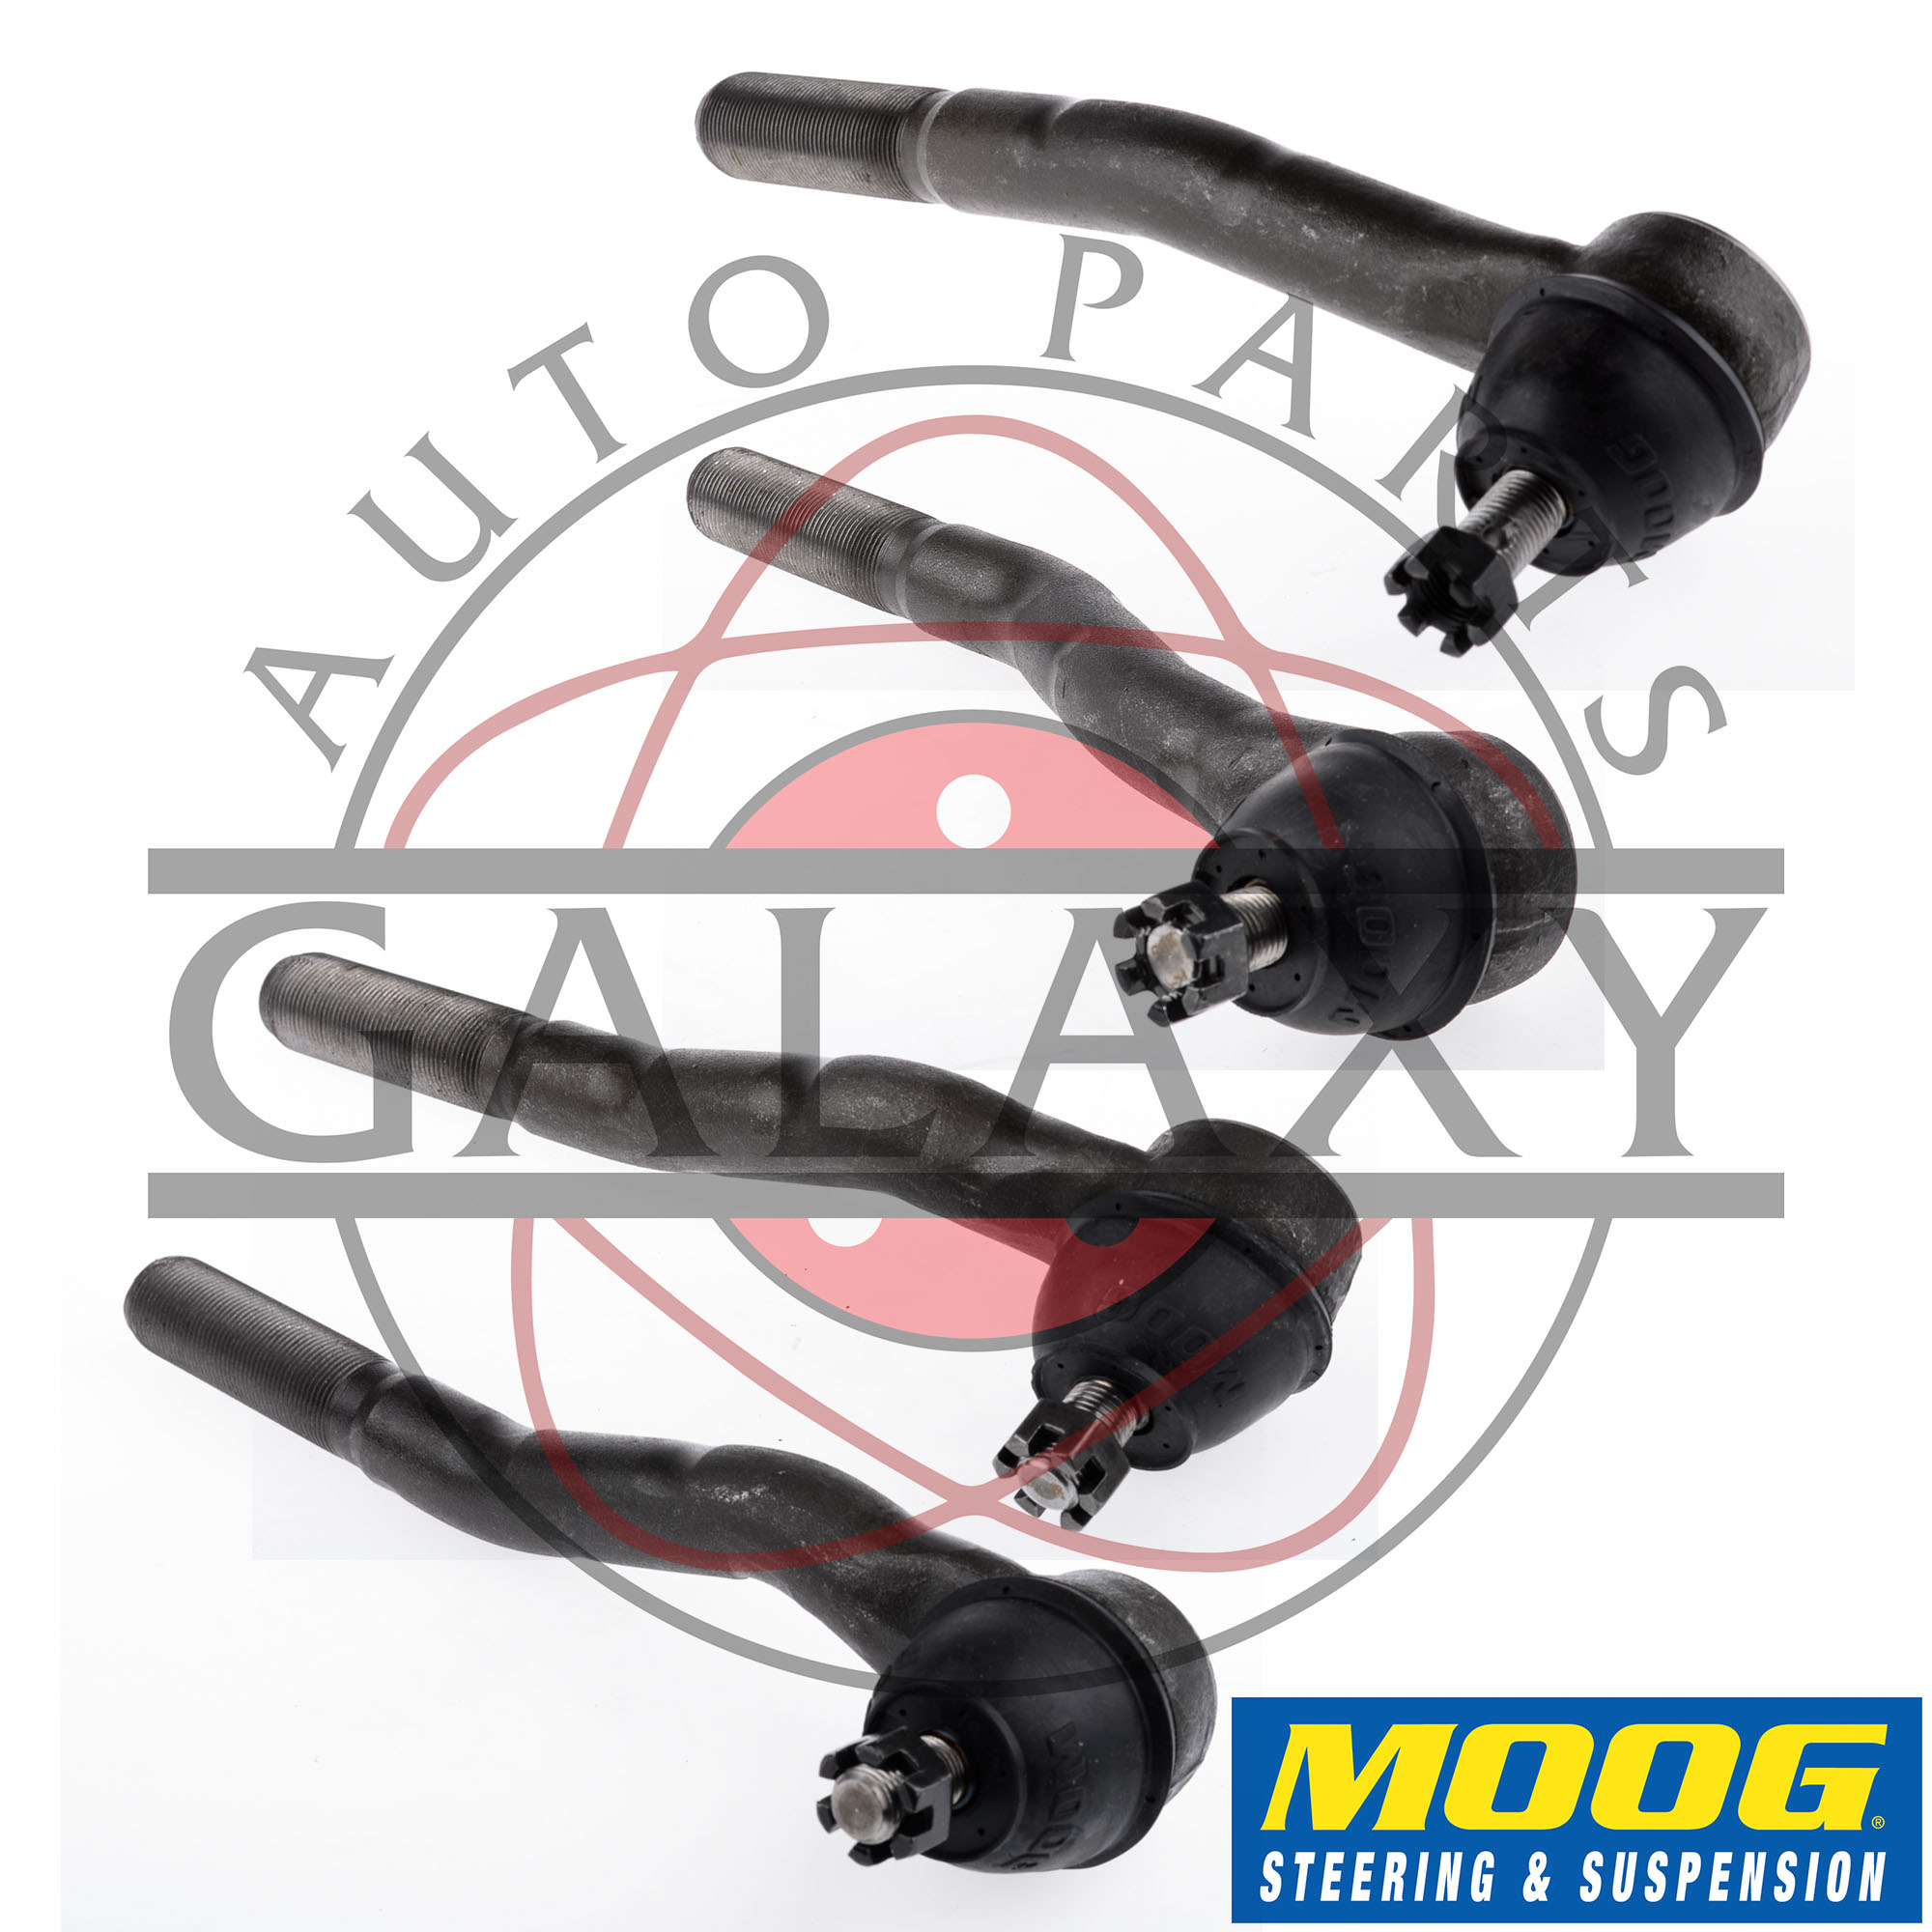 spare part grand new veloz all kijang innova vs fortuner moog replacement inner and outer tie rod ends for jeep